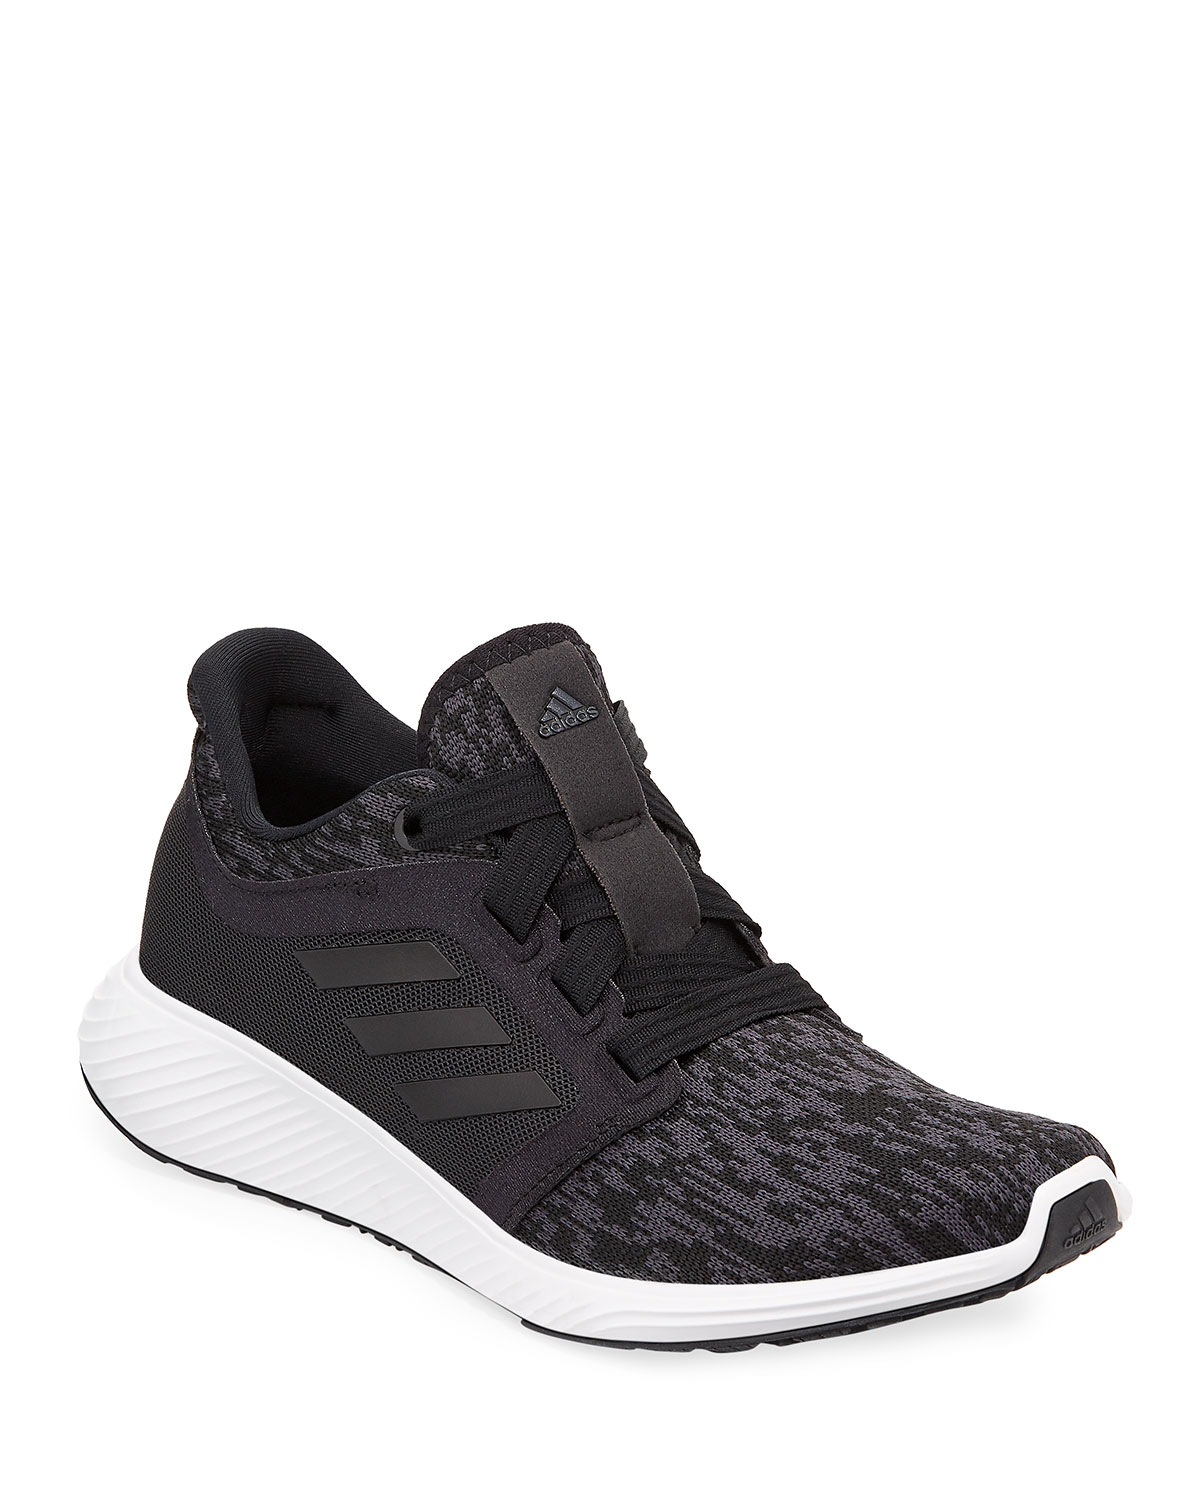 Edge Lux 3 Knit Sneakers